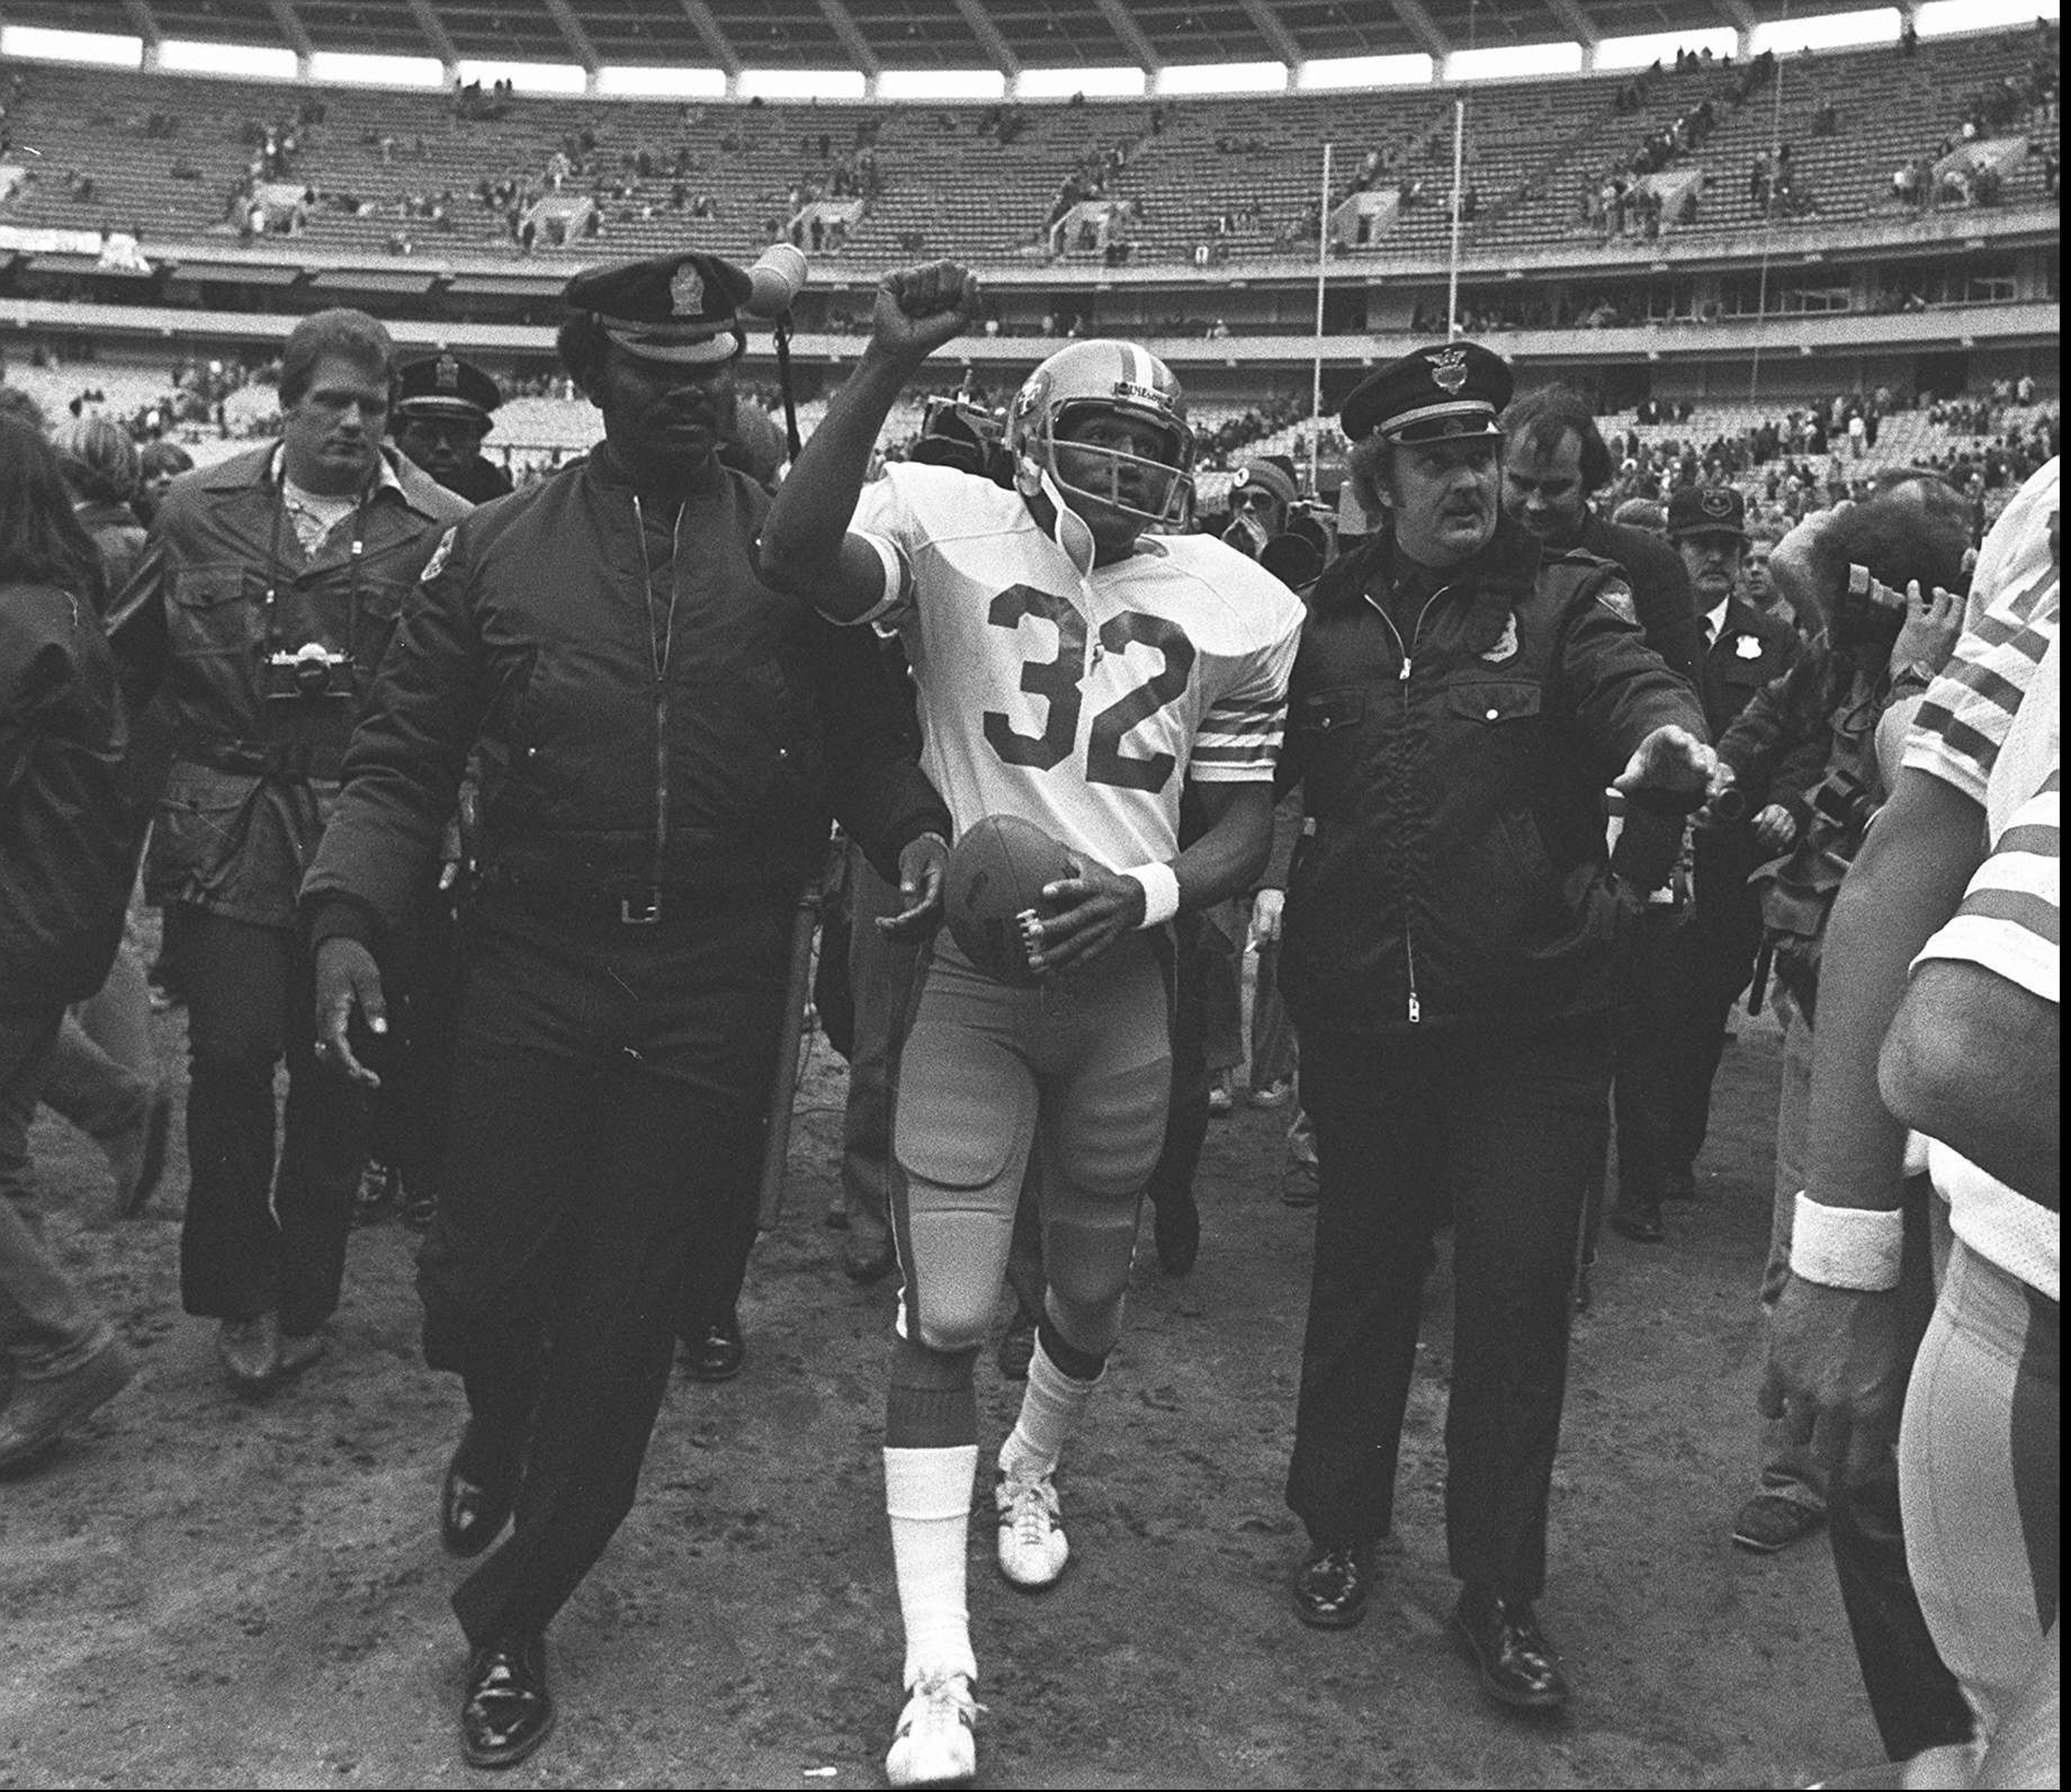 FILE - In this Dec. 16, 1979 file photo, San Francisco 49ers running back O.J. Simpson is escorted from the field by police after the final NFL football game of his career against in the Atlanta Falcons at Atlanta Fulton County Stadium in Atlanta, Ga. Simpson retired from football after the 1979 season, later being inducted into the Pro Football Hall of Fame and beginning careers in acting and football broadcasting. A Nevada prison official said early Sunday, Oct. 1, 2017, O.J. Simpson, the former football legend and Hollywood star, has been released from a Nevada prison in Lovelock after serving nine years for armed robbery.  (AP Photo, File)